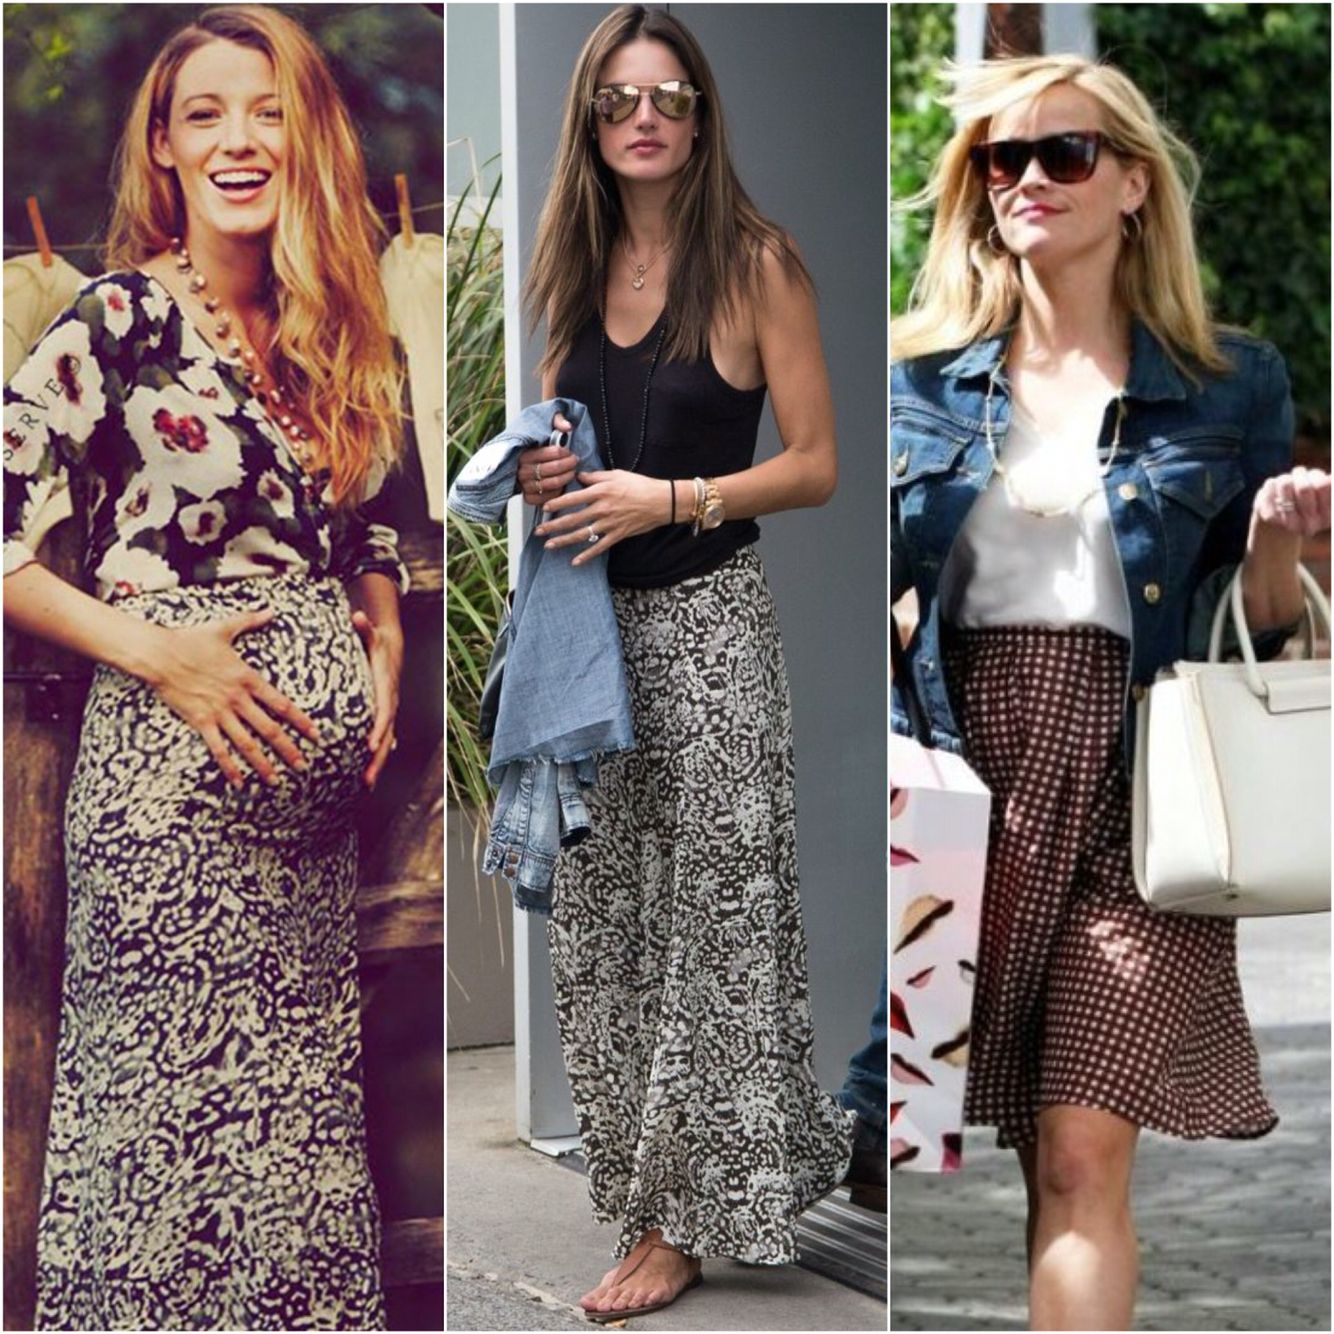 Blake Lively Chose A Sam And Lavi Design For Her Baby Shower. Sheu0027s Not  Alone